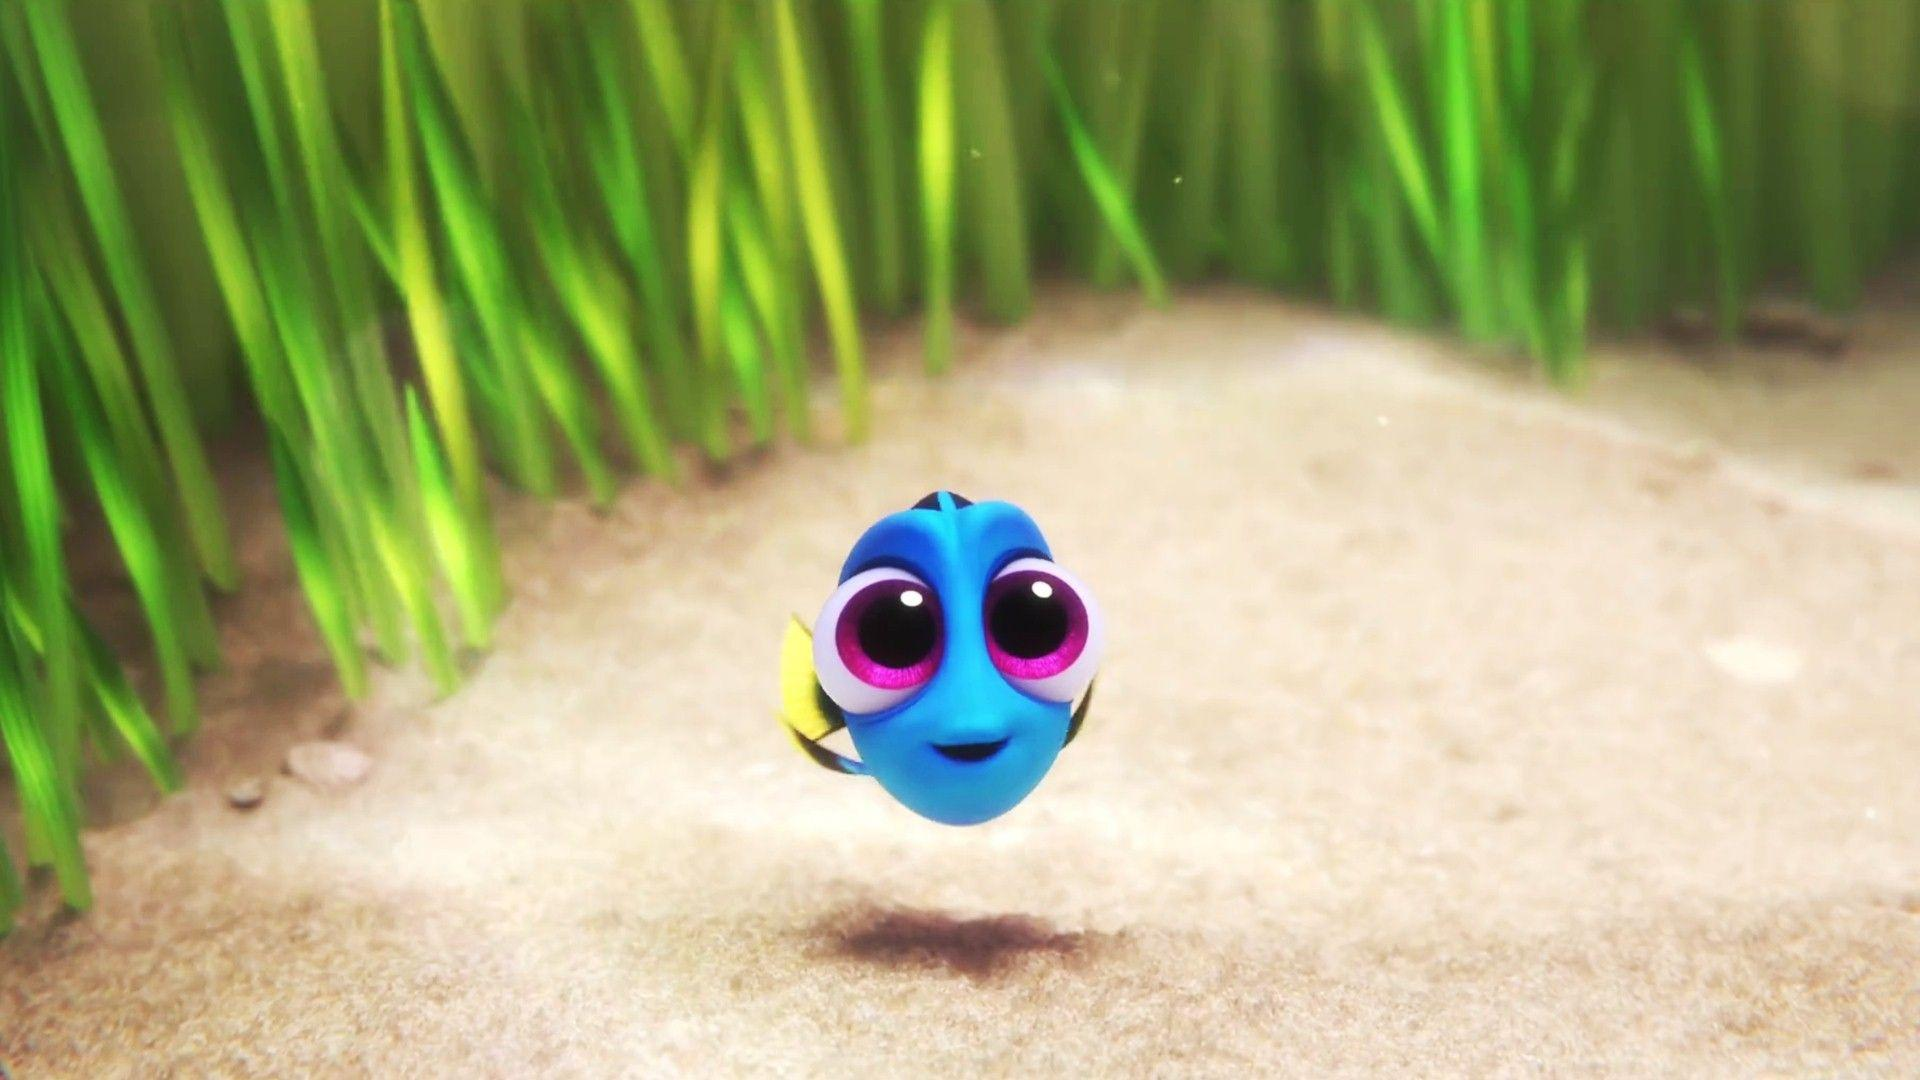 Finding Dory Wallpapers HD Backgrounds, Image, Pics, Photos Free